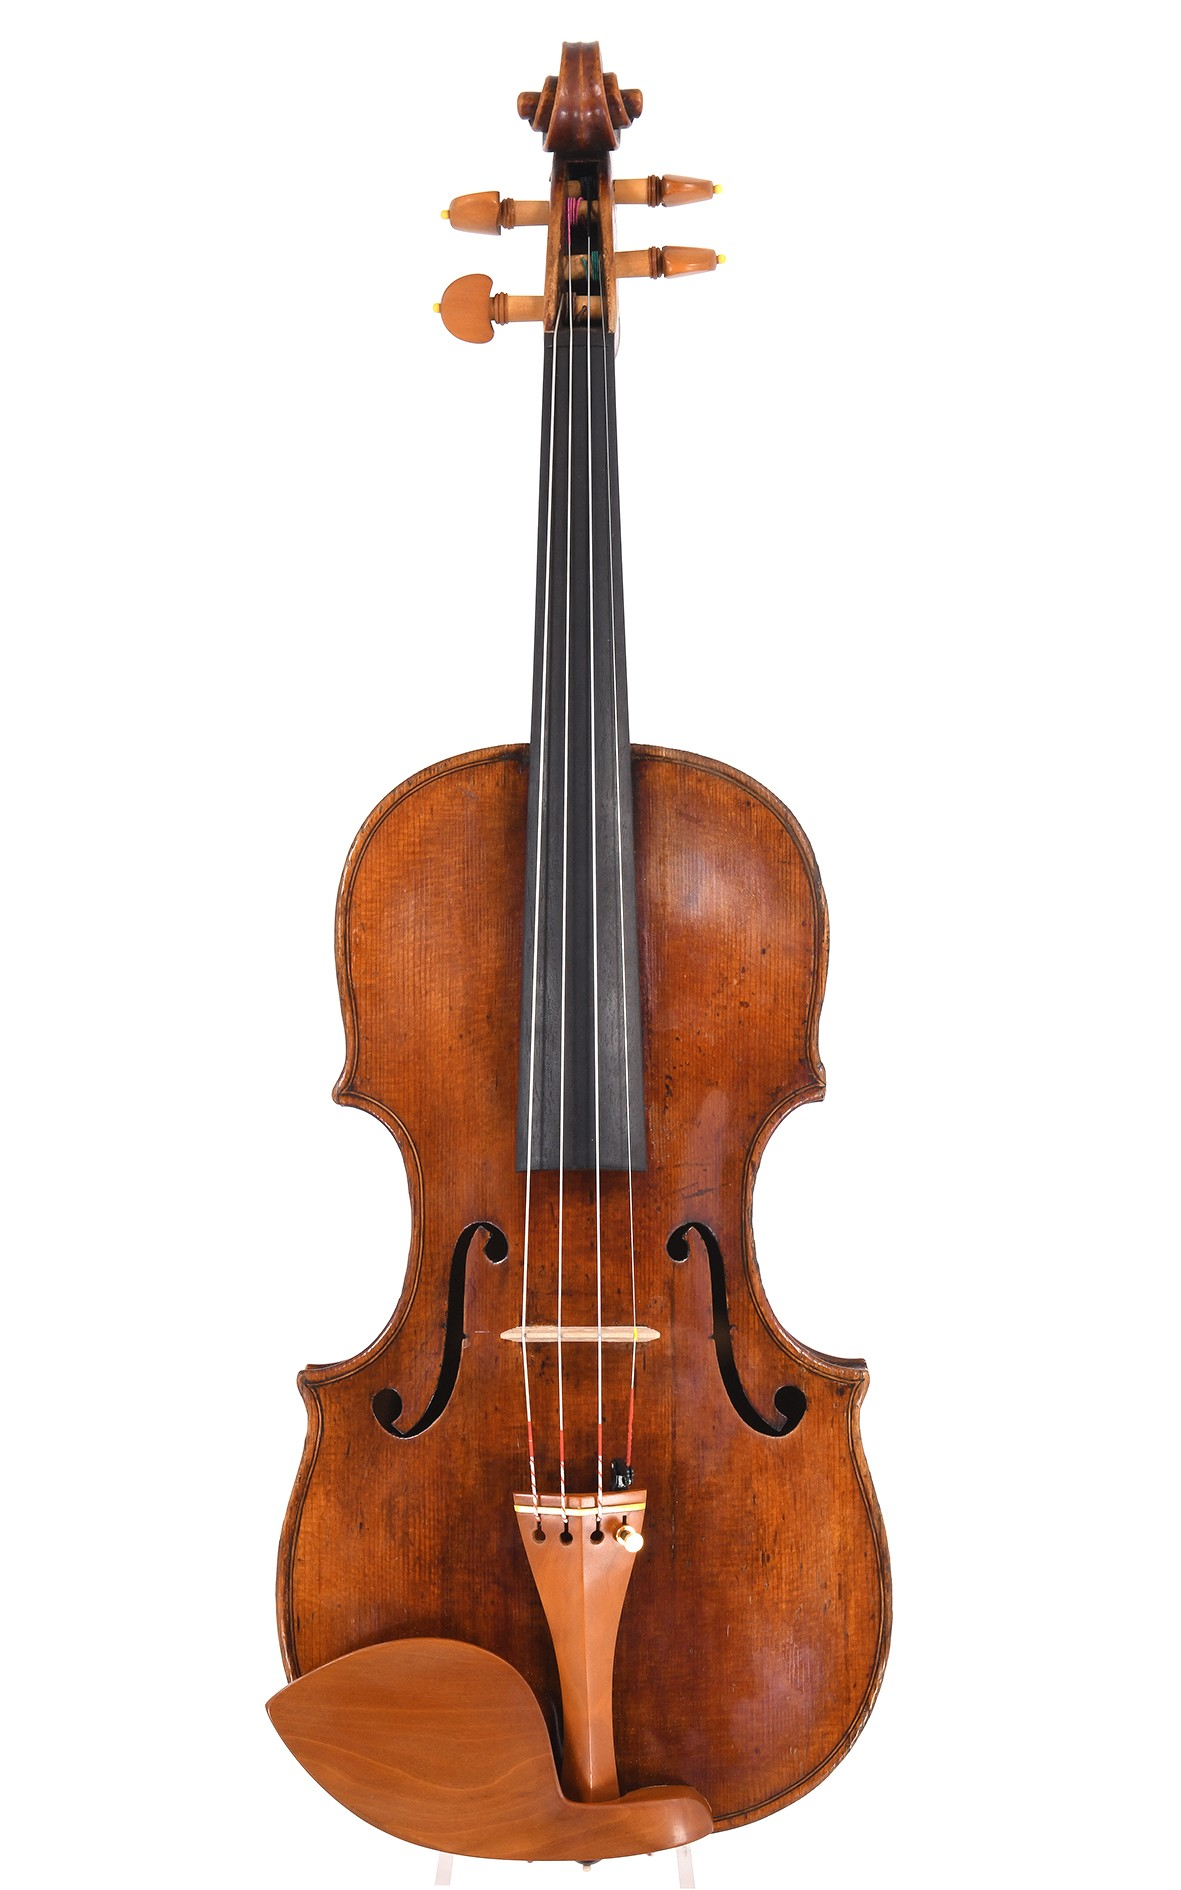 Antique master violin of the Hopf family, made in Klingenthal around 1800